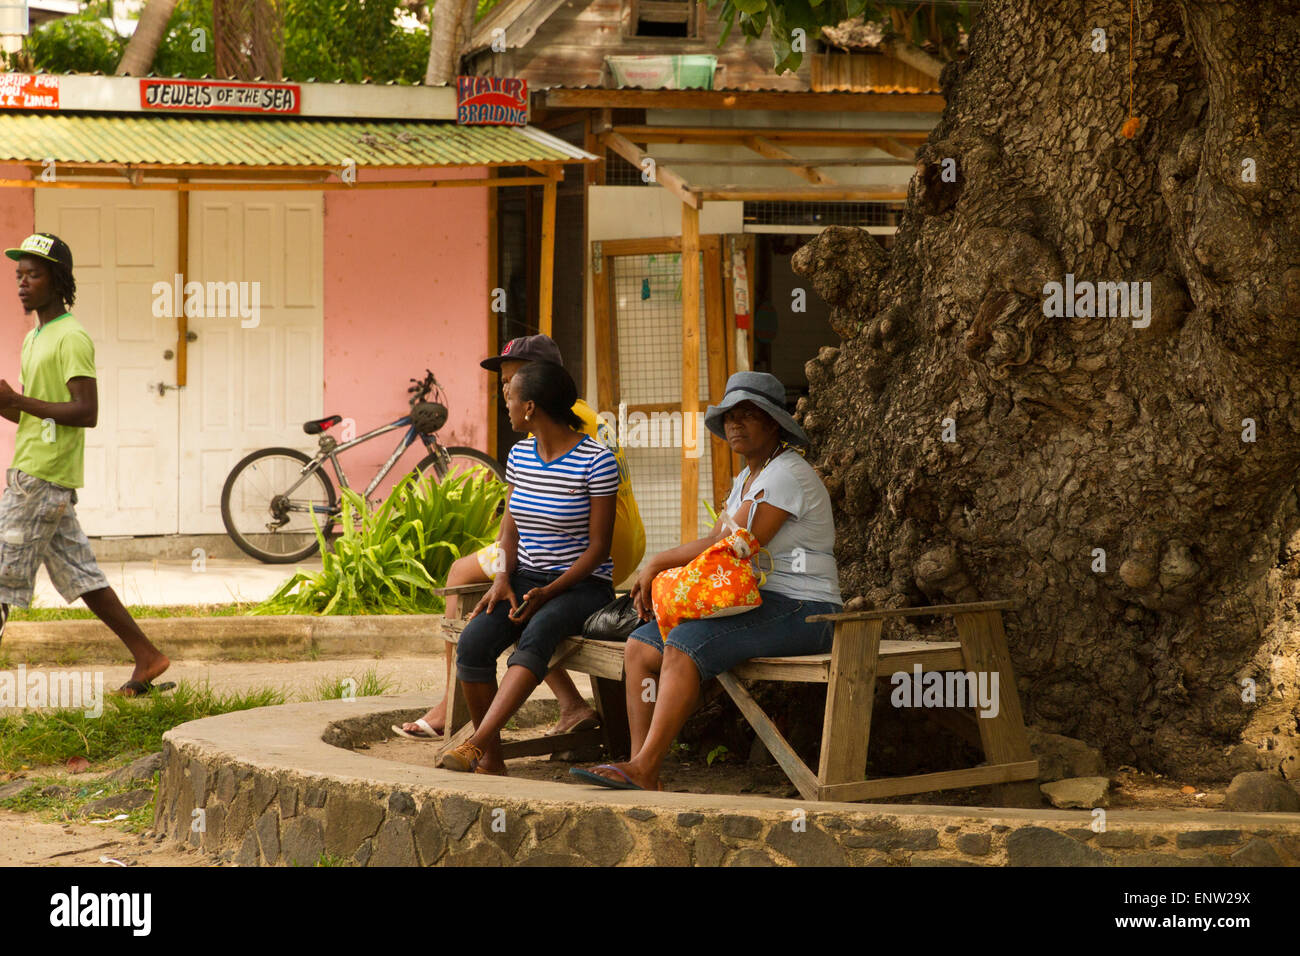 Islanders waiting for transport in a town square on island of St Vincent West Indies - Stock Image